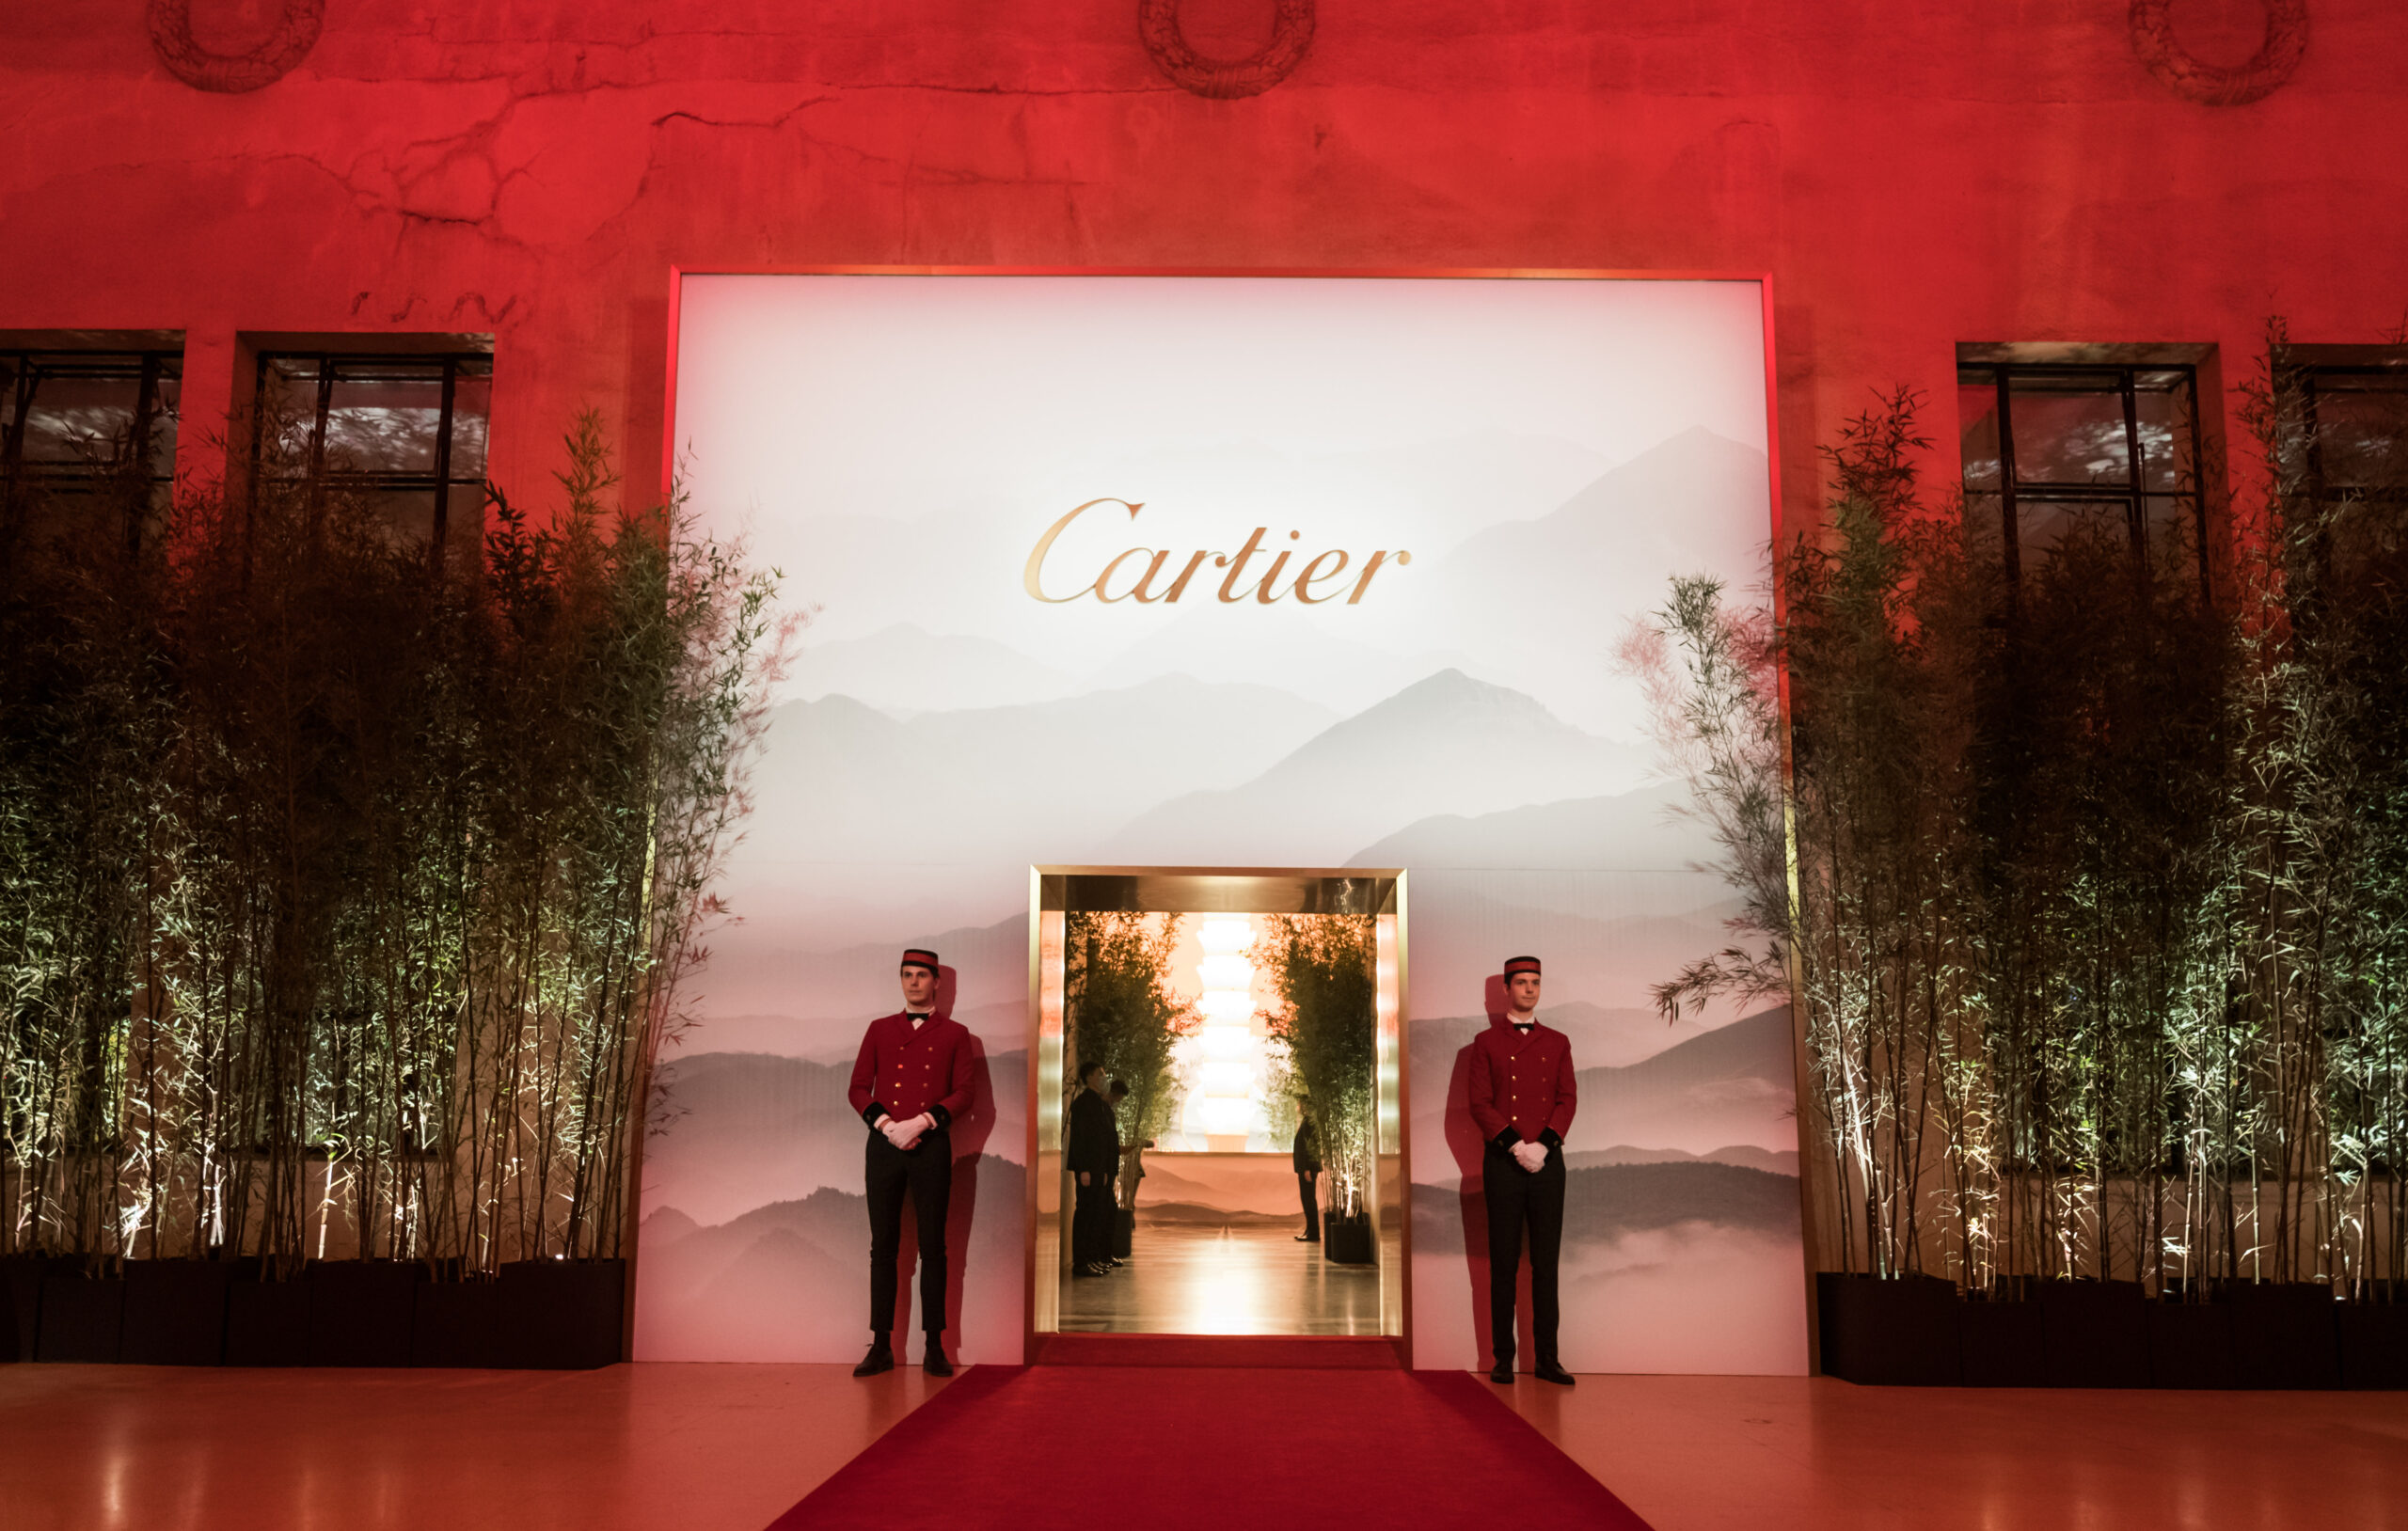 Cartier P66 Boutique Re-opening & Gala Dinner July 31st Shanghai – 5